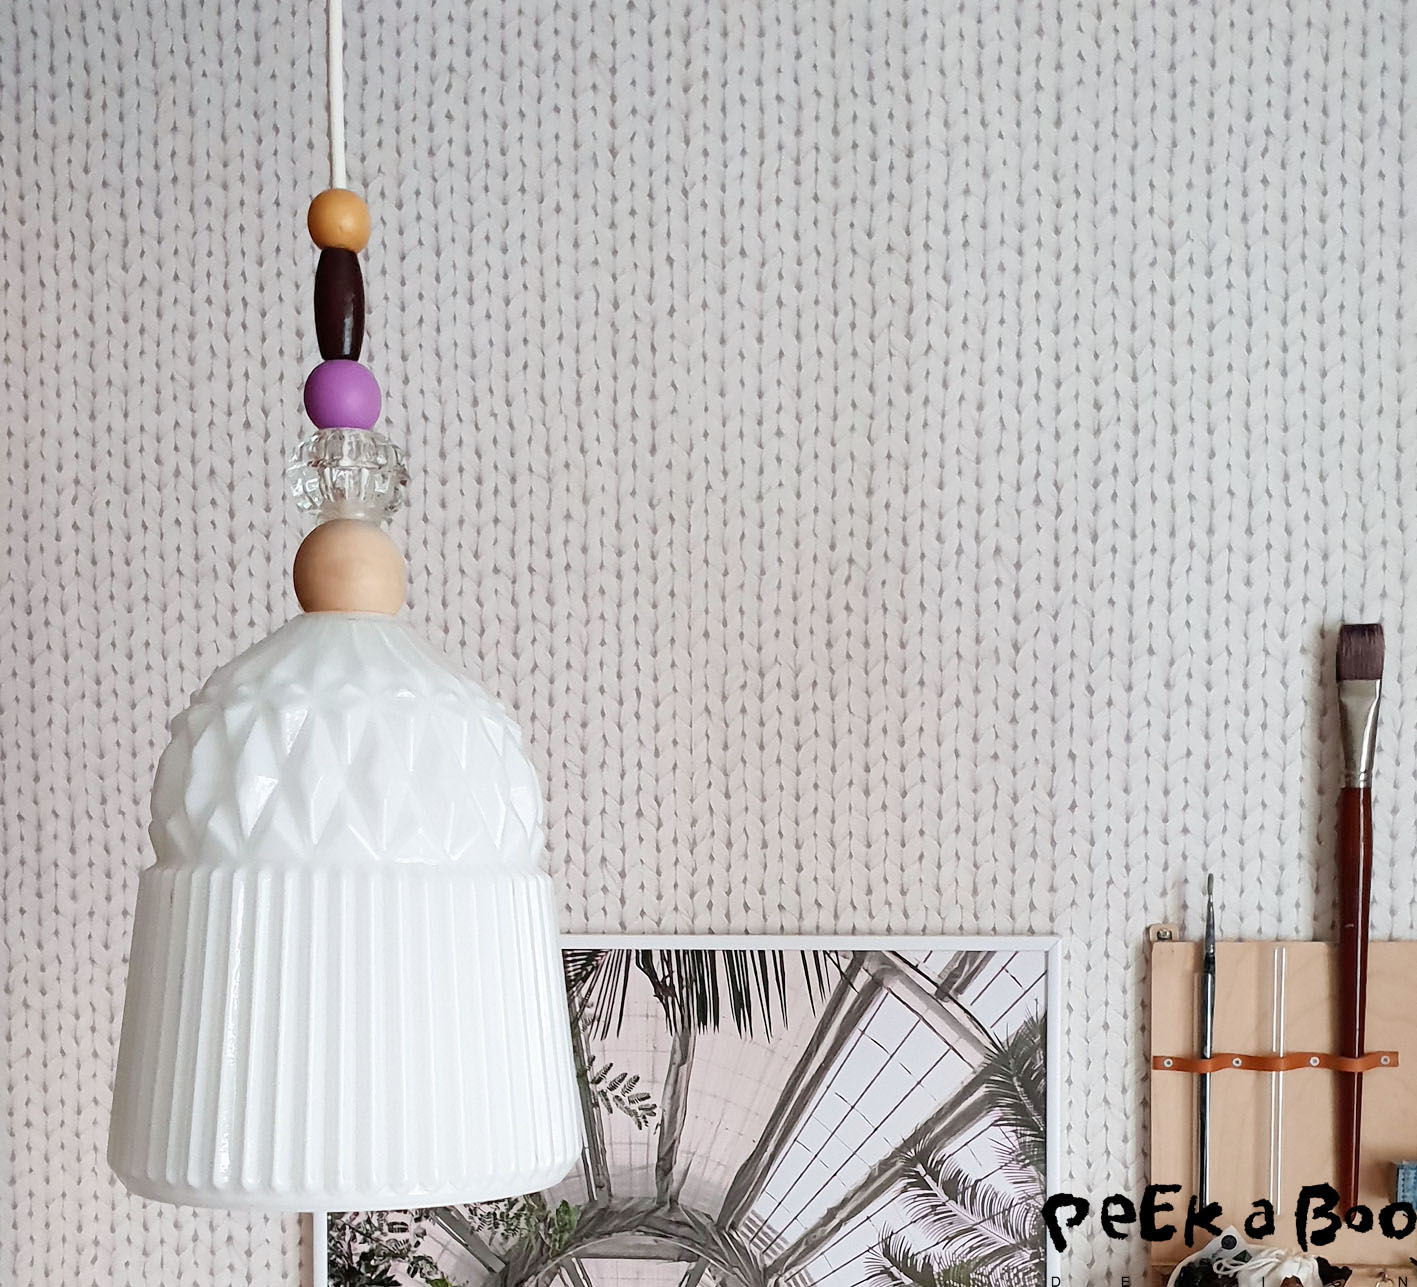 esta home wallpaper bought in Silvan and ikea hack lamp.